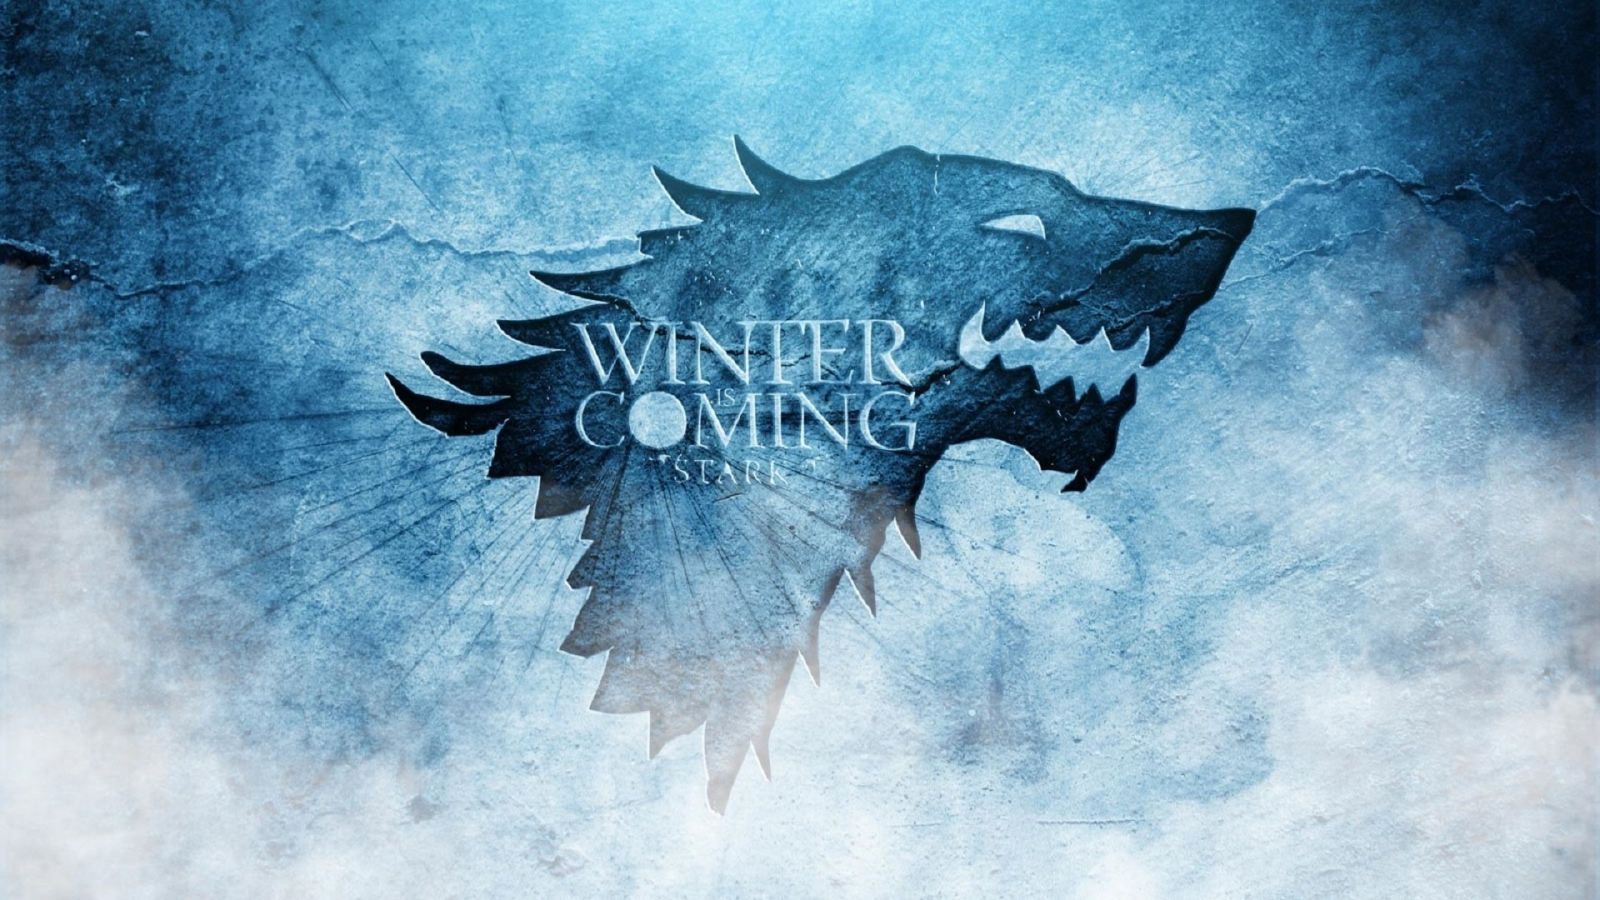 Game of Thrones the Song of Ice and Fire for 1600 x 900 HDTV resolution